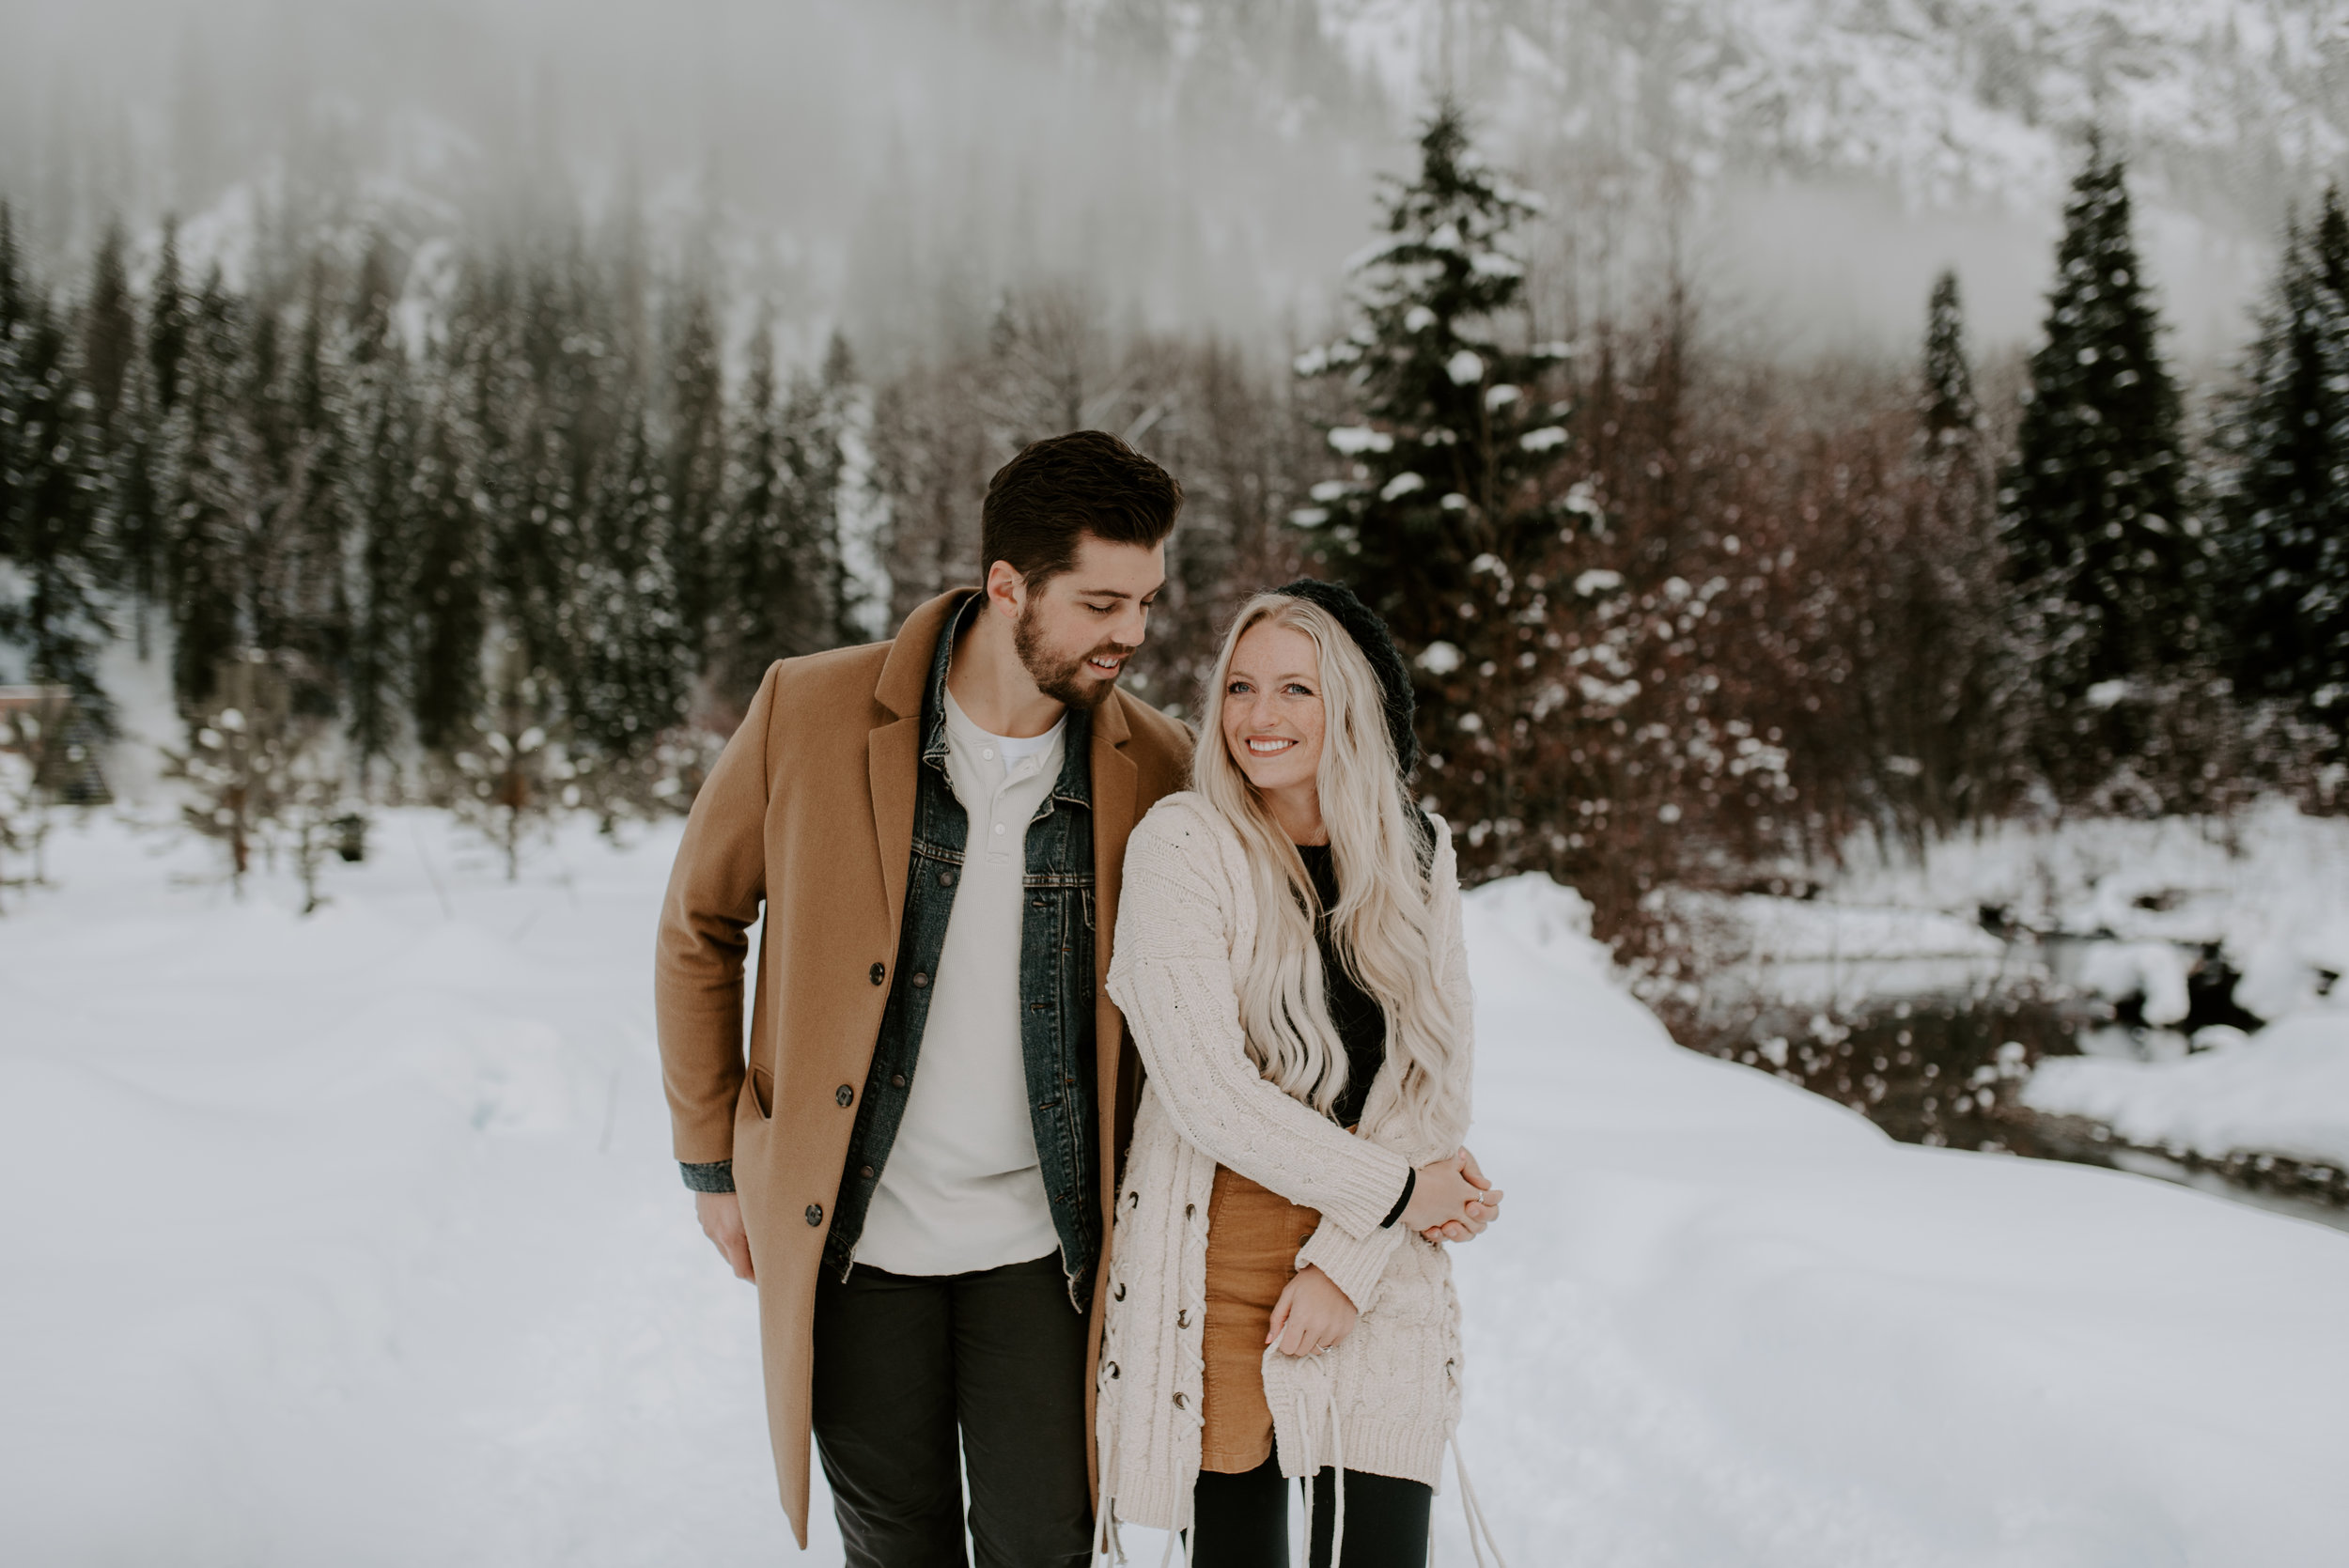 Winter engagement session at North Cascades National Park in Washington